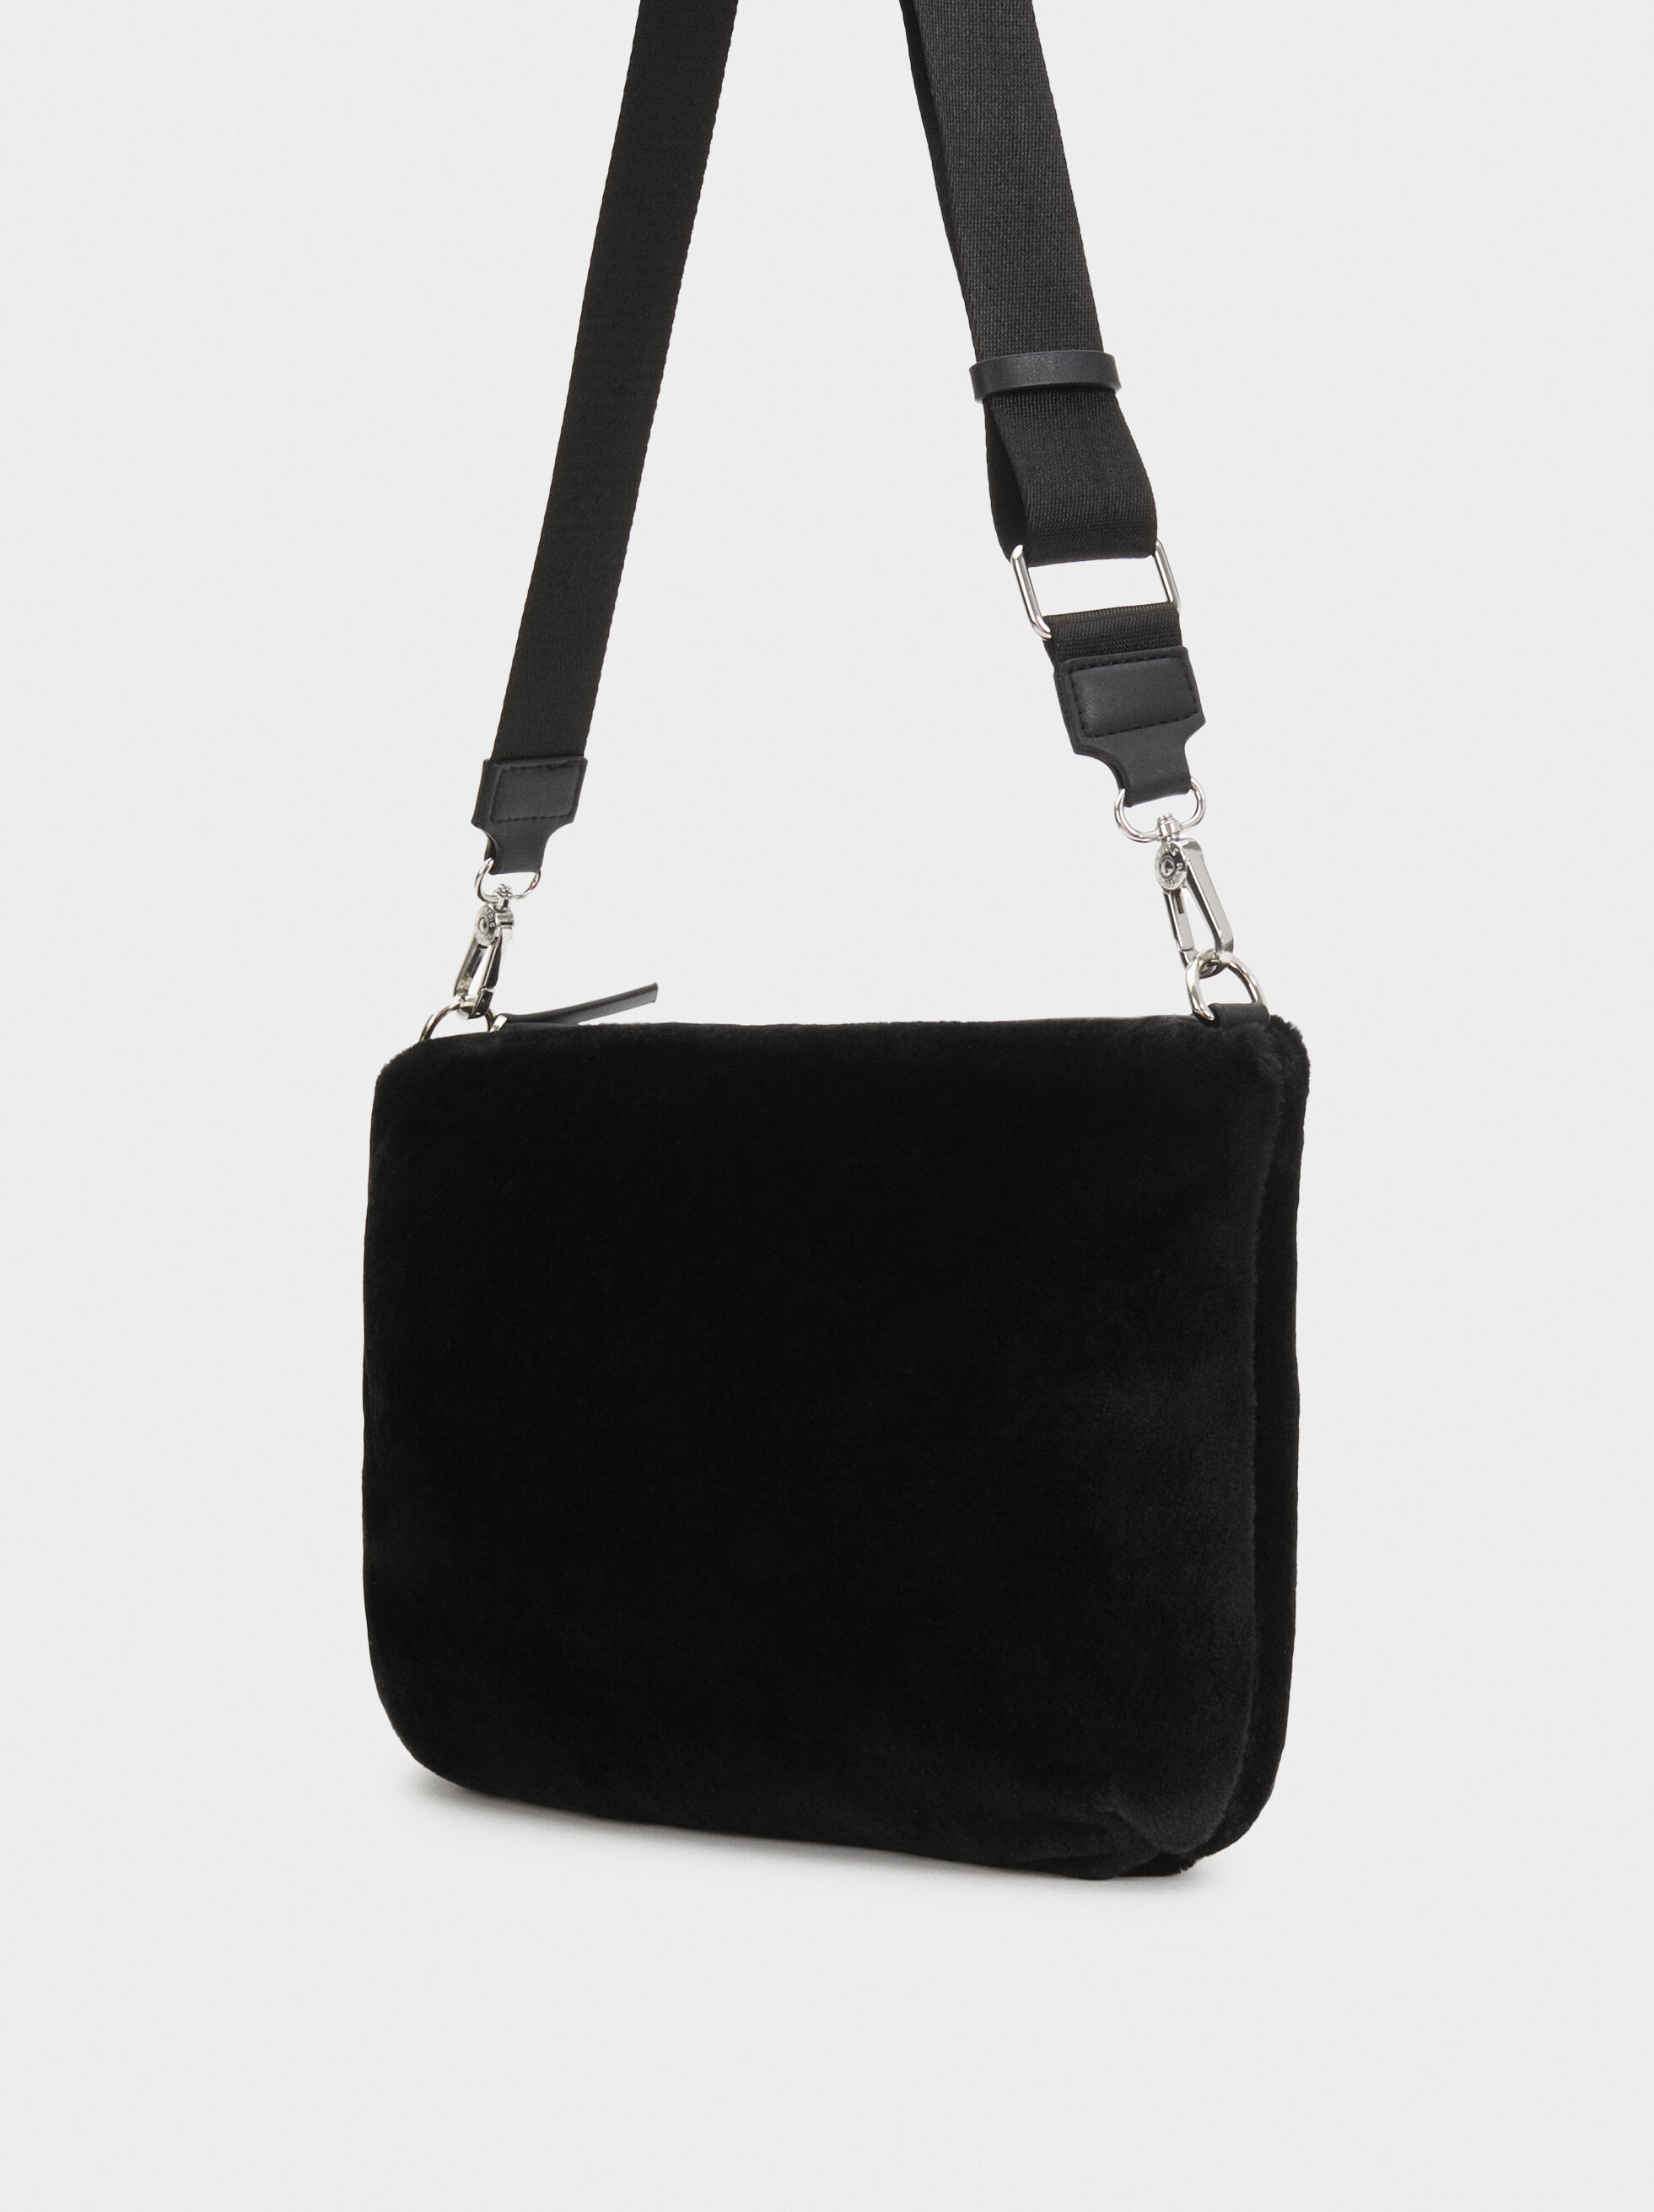 Tote Bag With Contrast Handle, Brick Red, hi-res